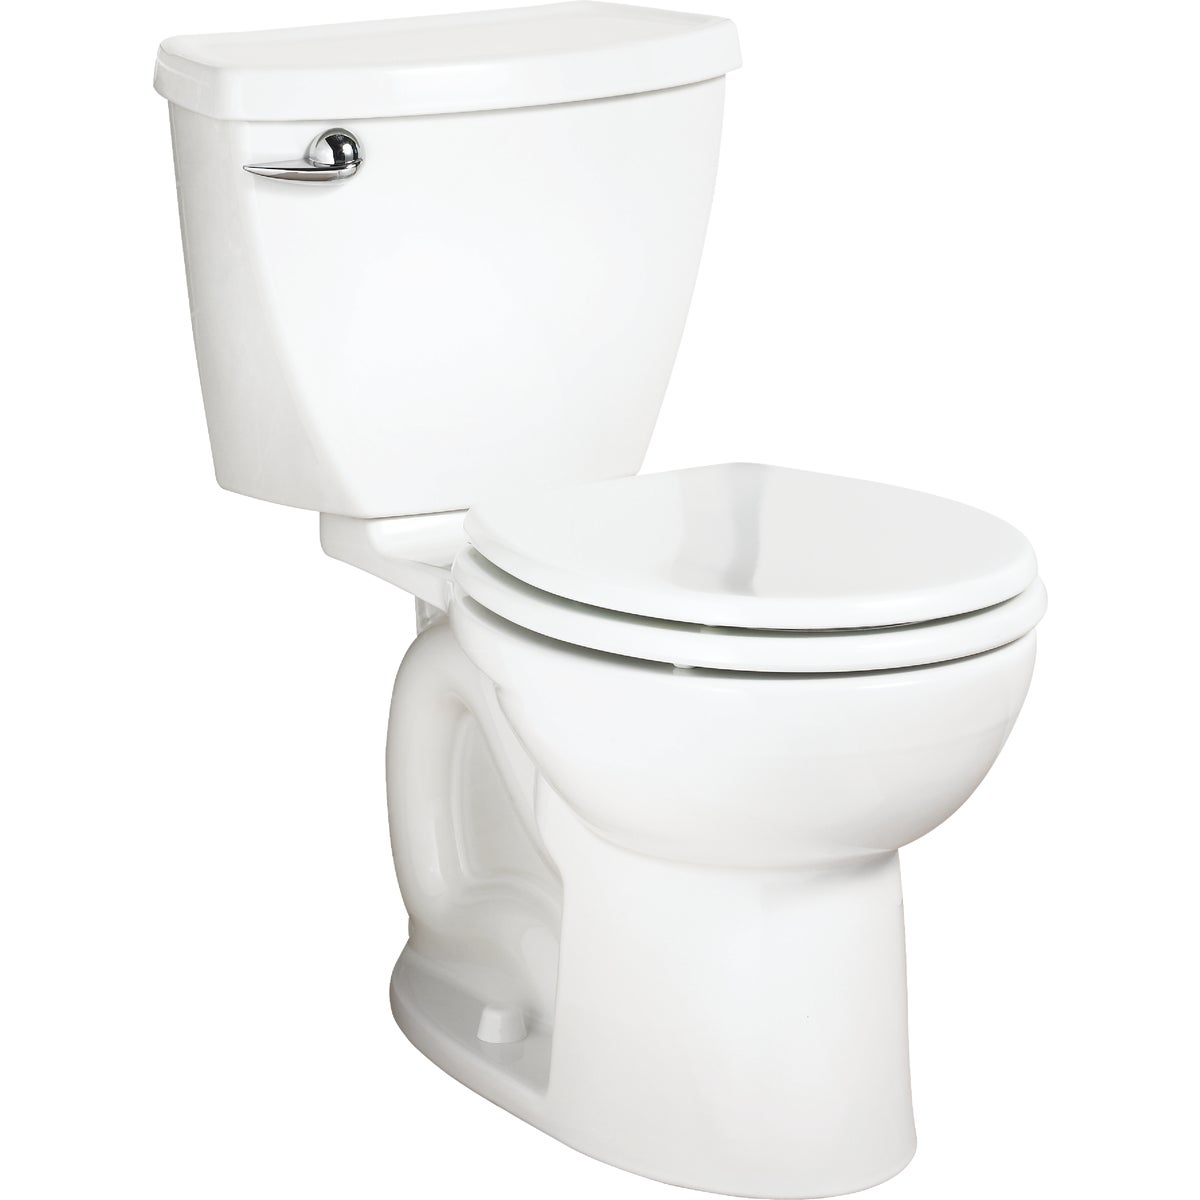 WHITE RF TOILET-TO-GO - 2880.128ST.020 by American Standard